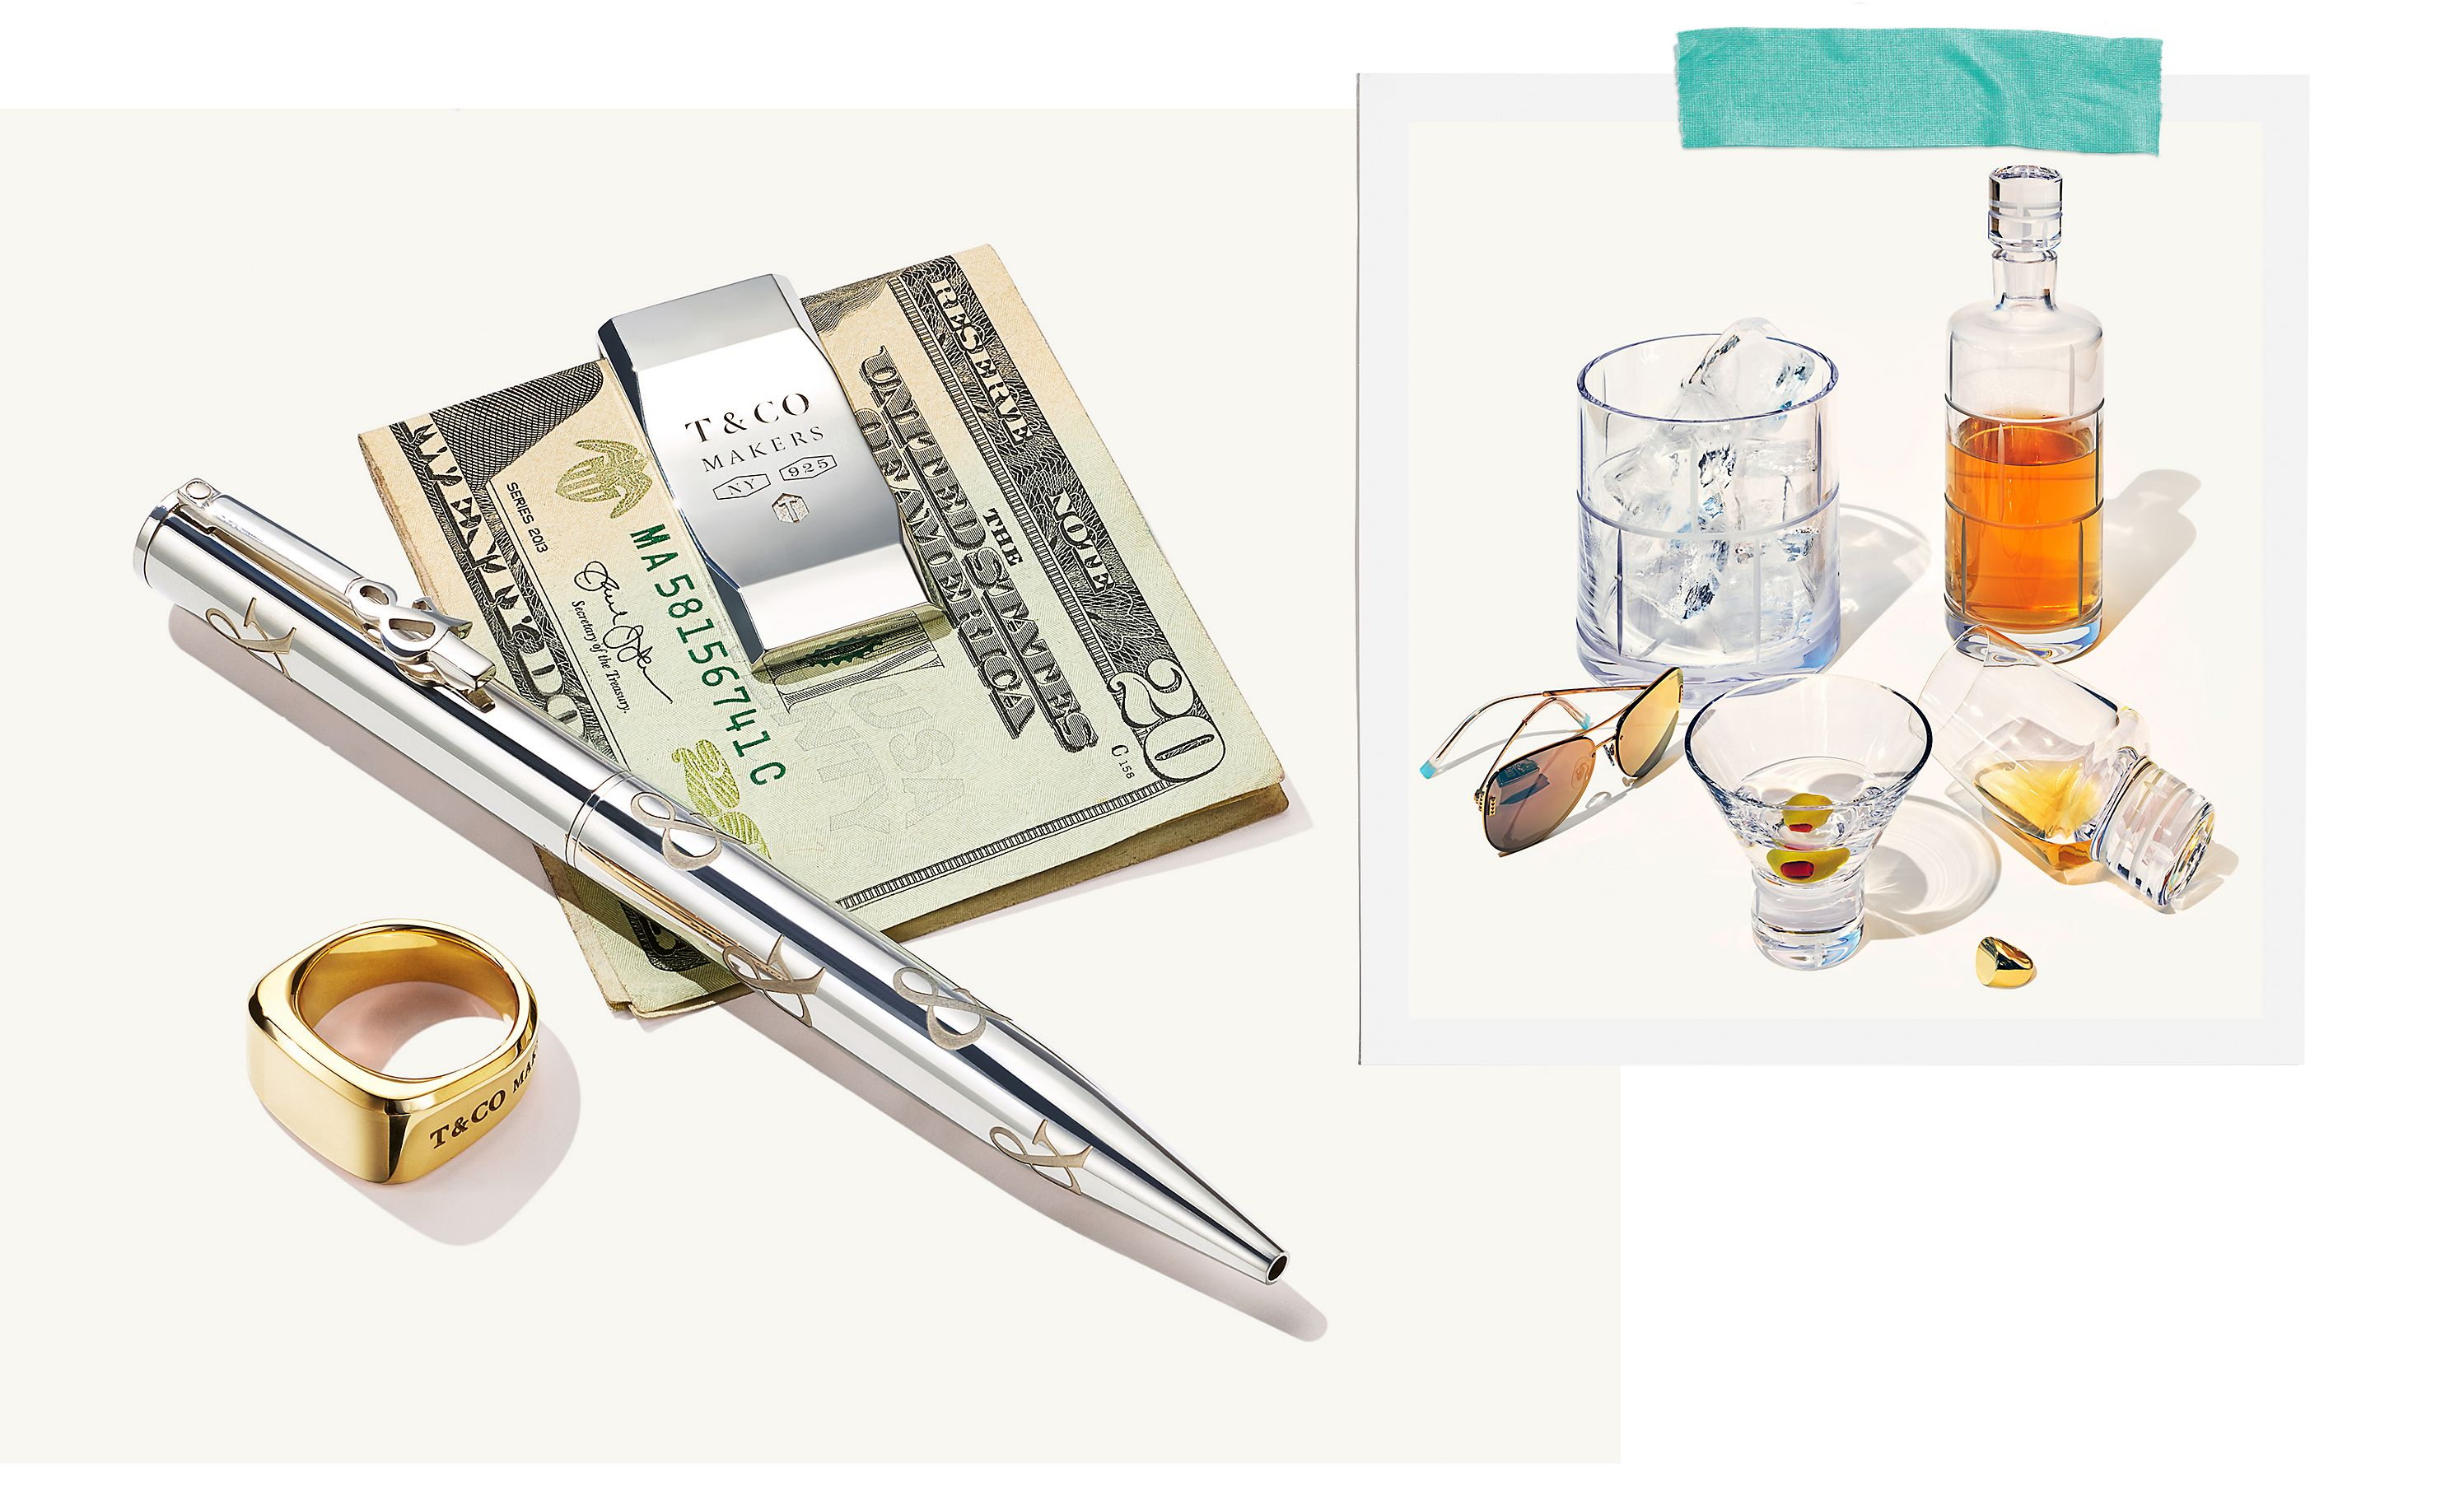 Tiffany & Co. Anniversary Gifts for Your Boyfriend